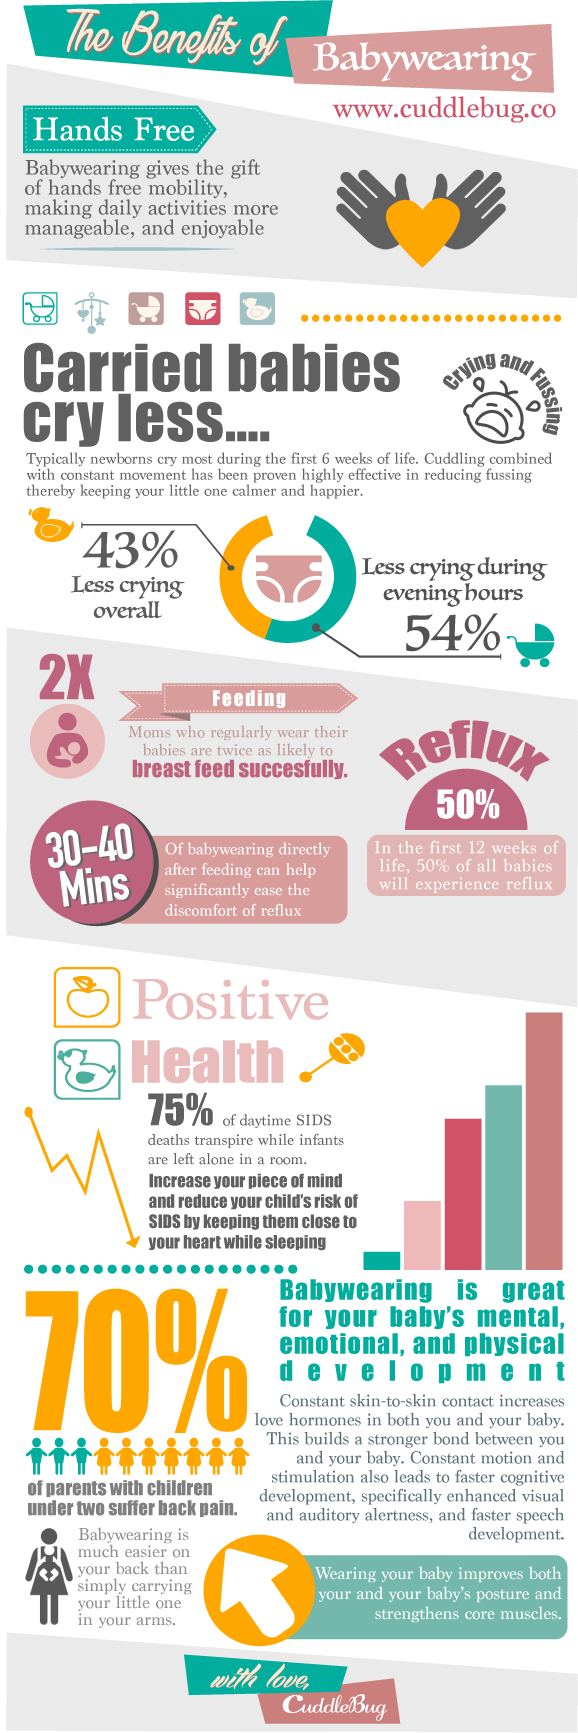 Benefits of Babywearing Infographic for New Moms